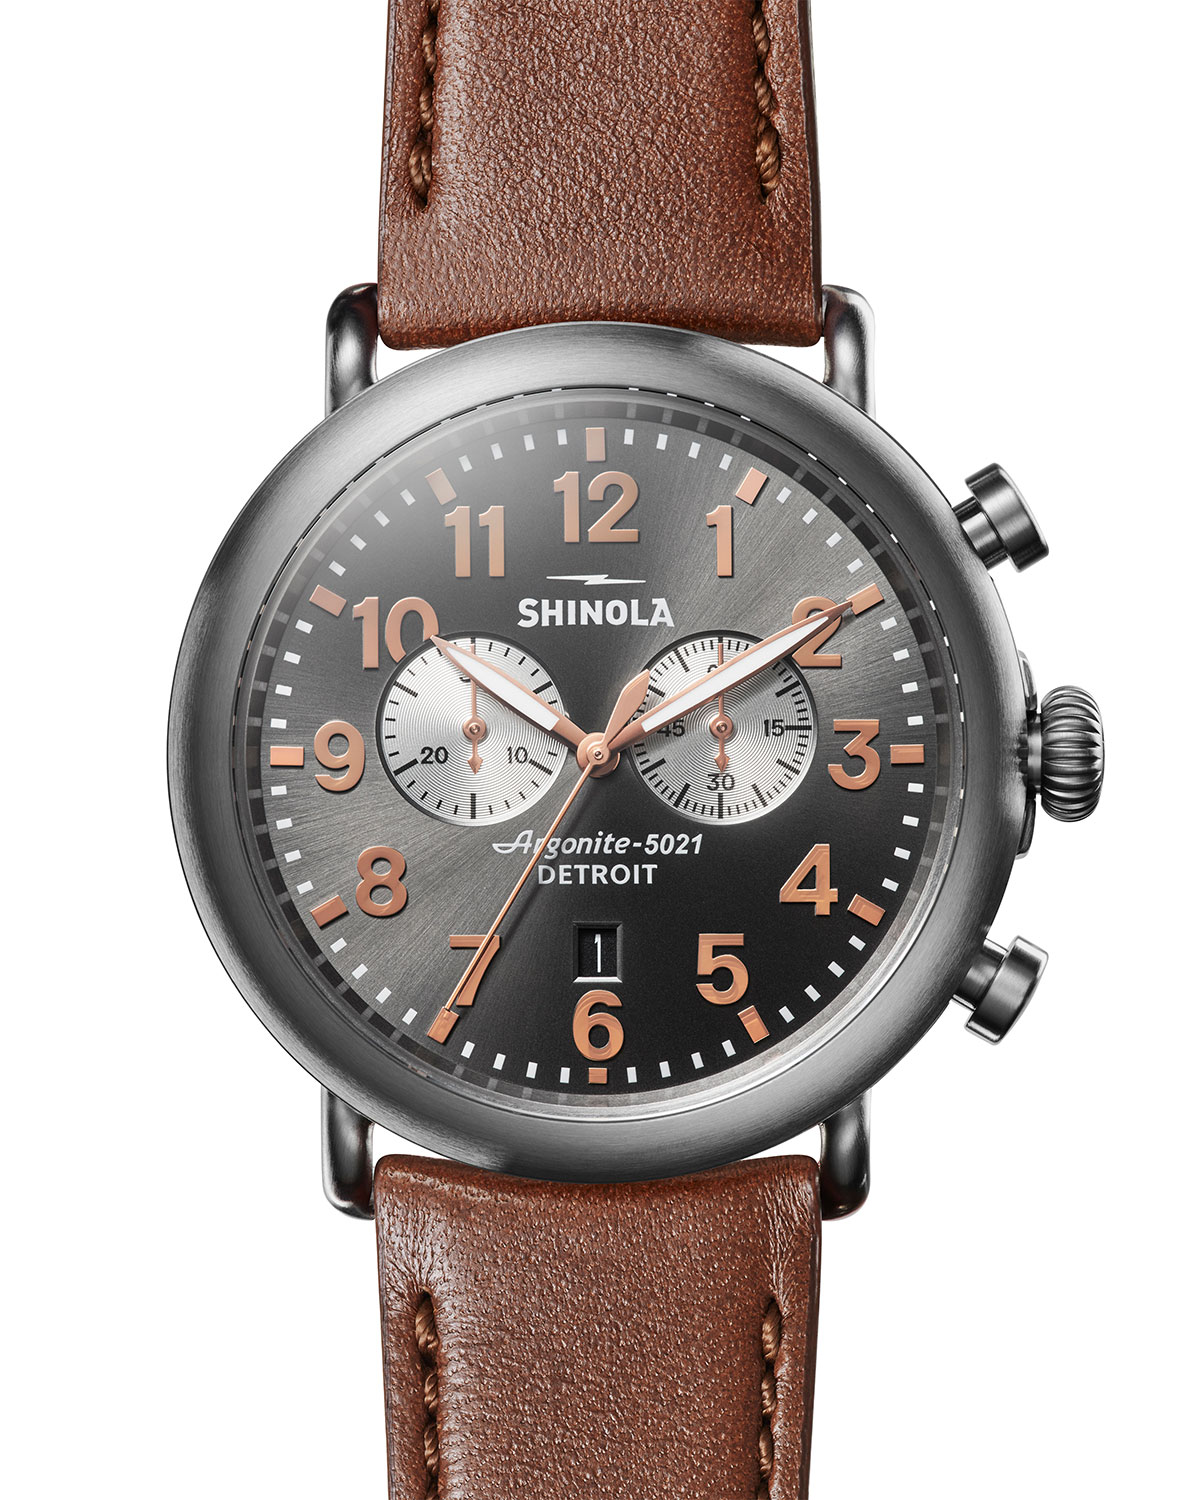 80a47158f Shinola Men's 47mm Runwell Titanium Chronograph Watch with Brown Leather  Strap